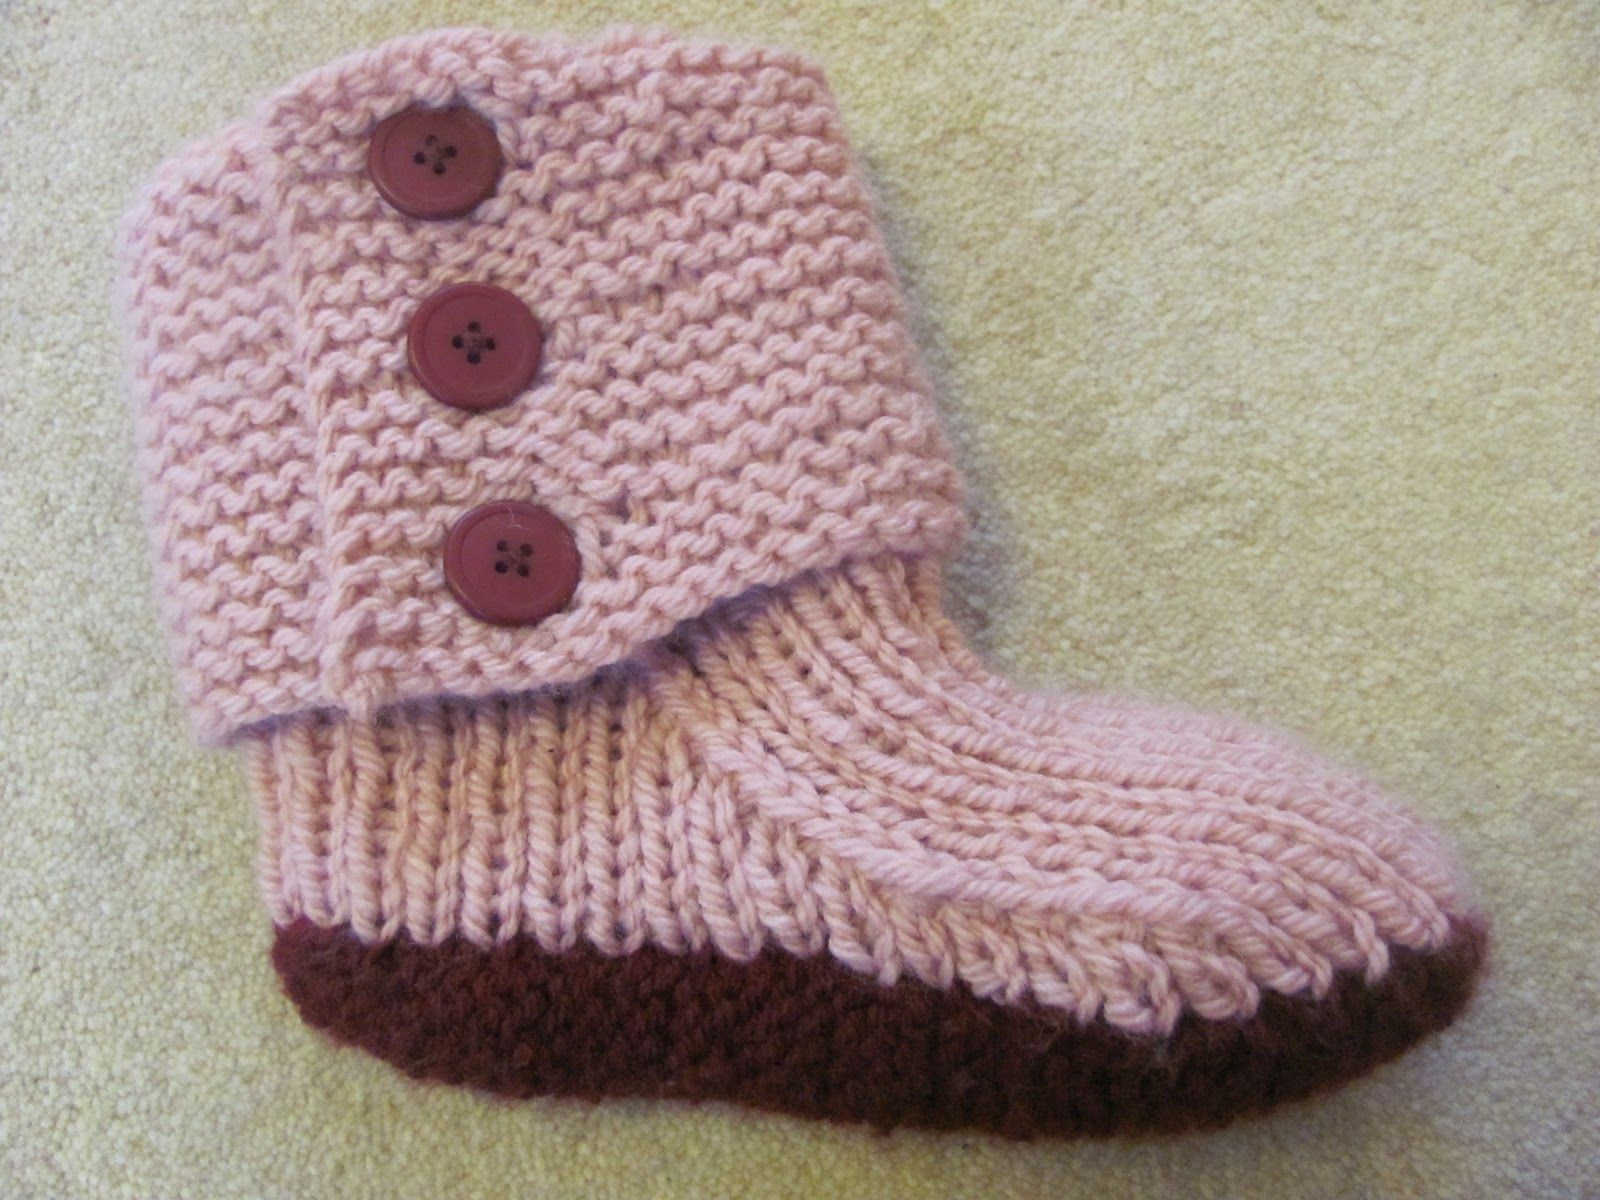 Easy Knitting Ideas Free : Prairie boots pattern by julie weisenberger knitting